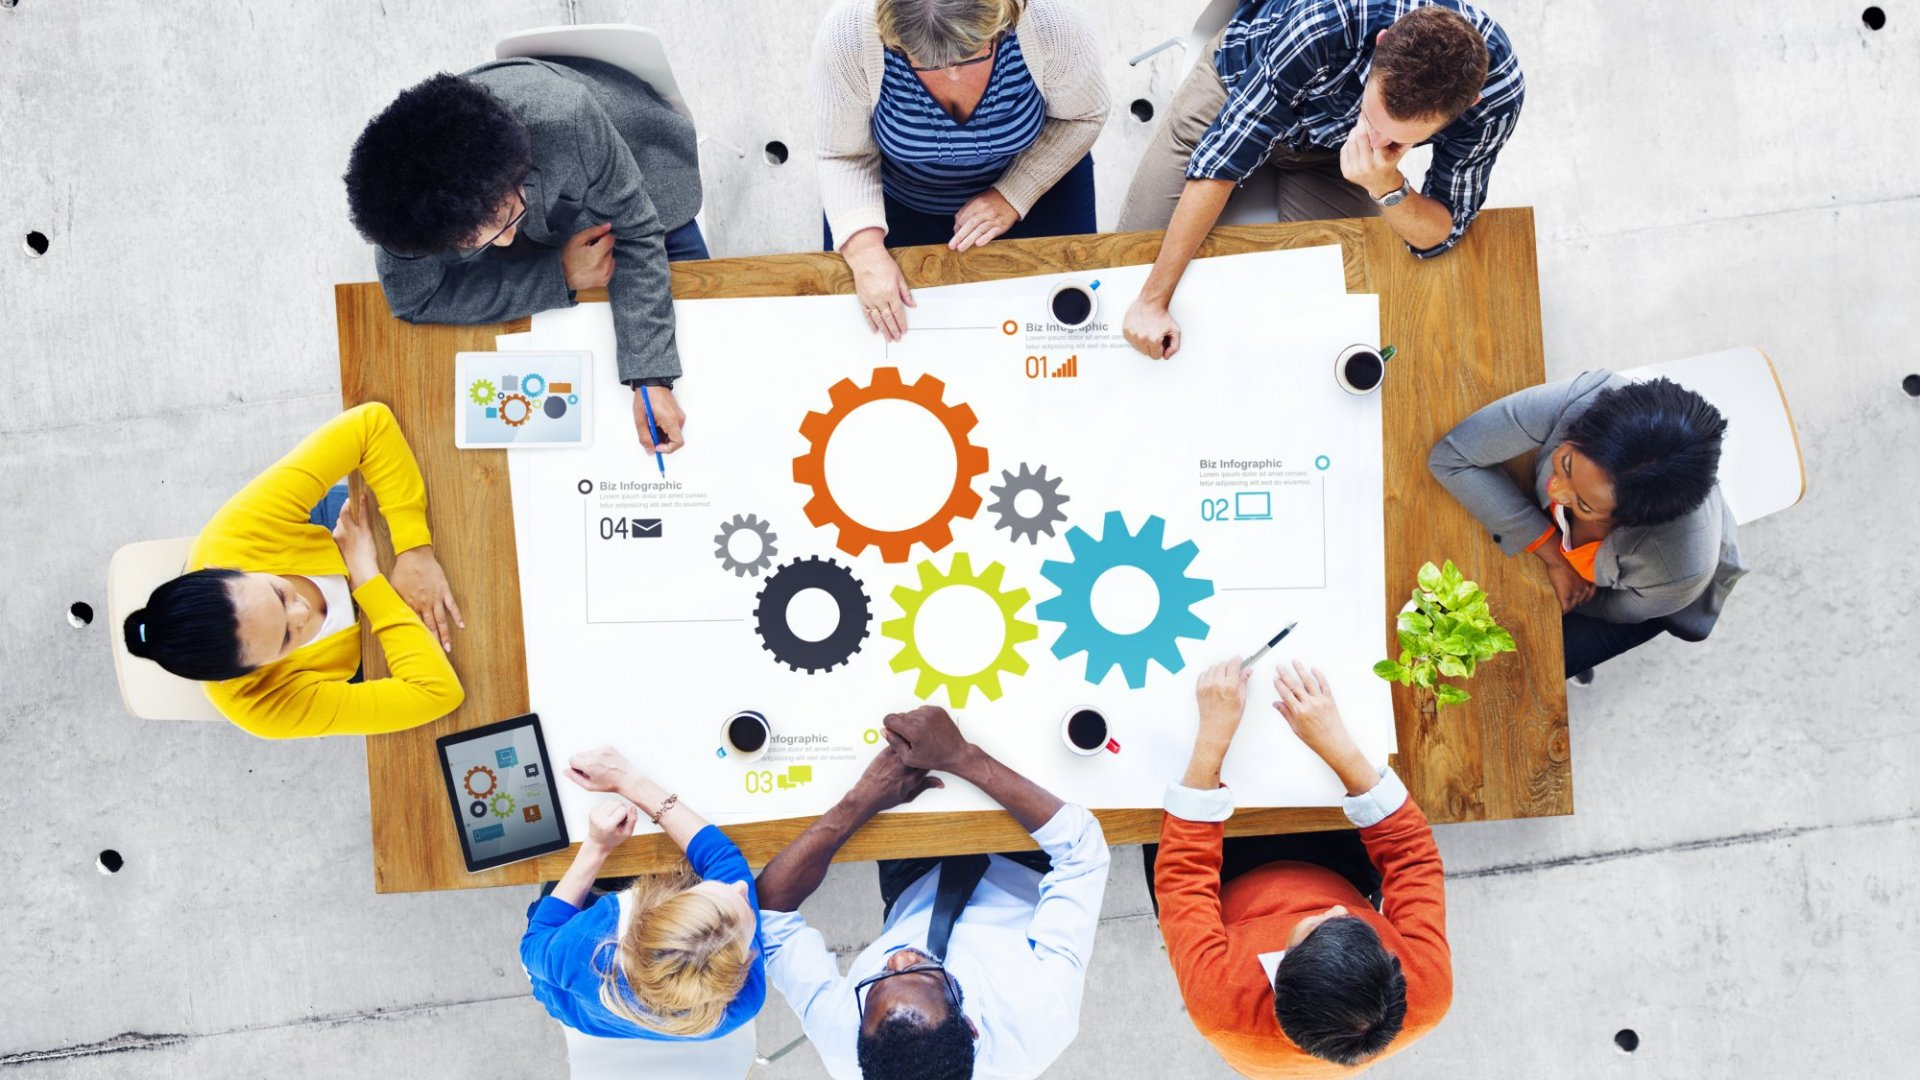 3 Smart Ways to Build a Highly Productive Team